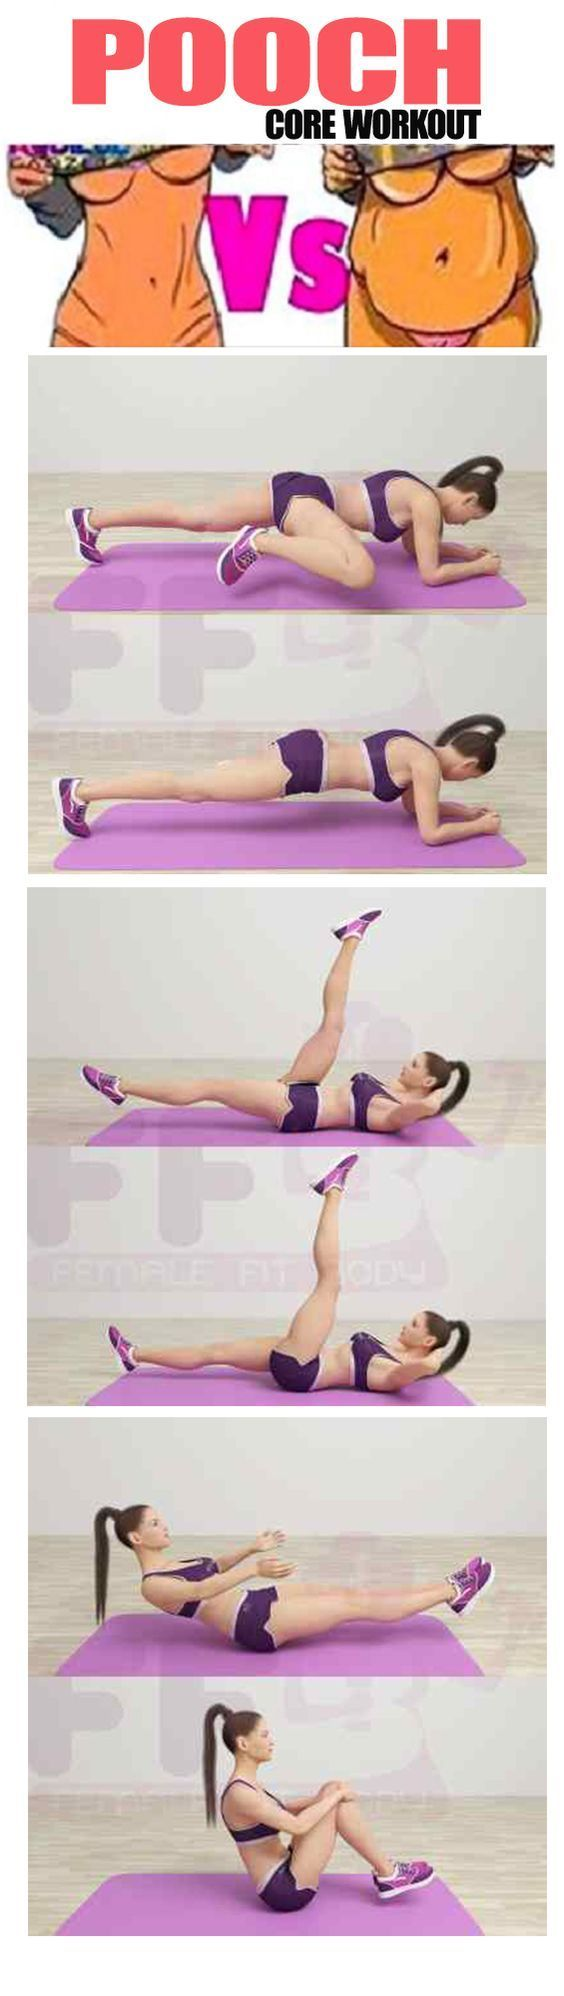 Best Lower Abs Pooch Exercises to Get a Six Pack Ab and Flat Stomach in a Month